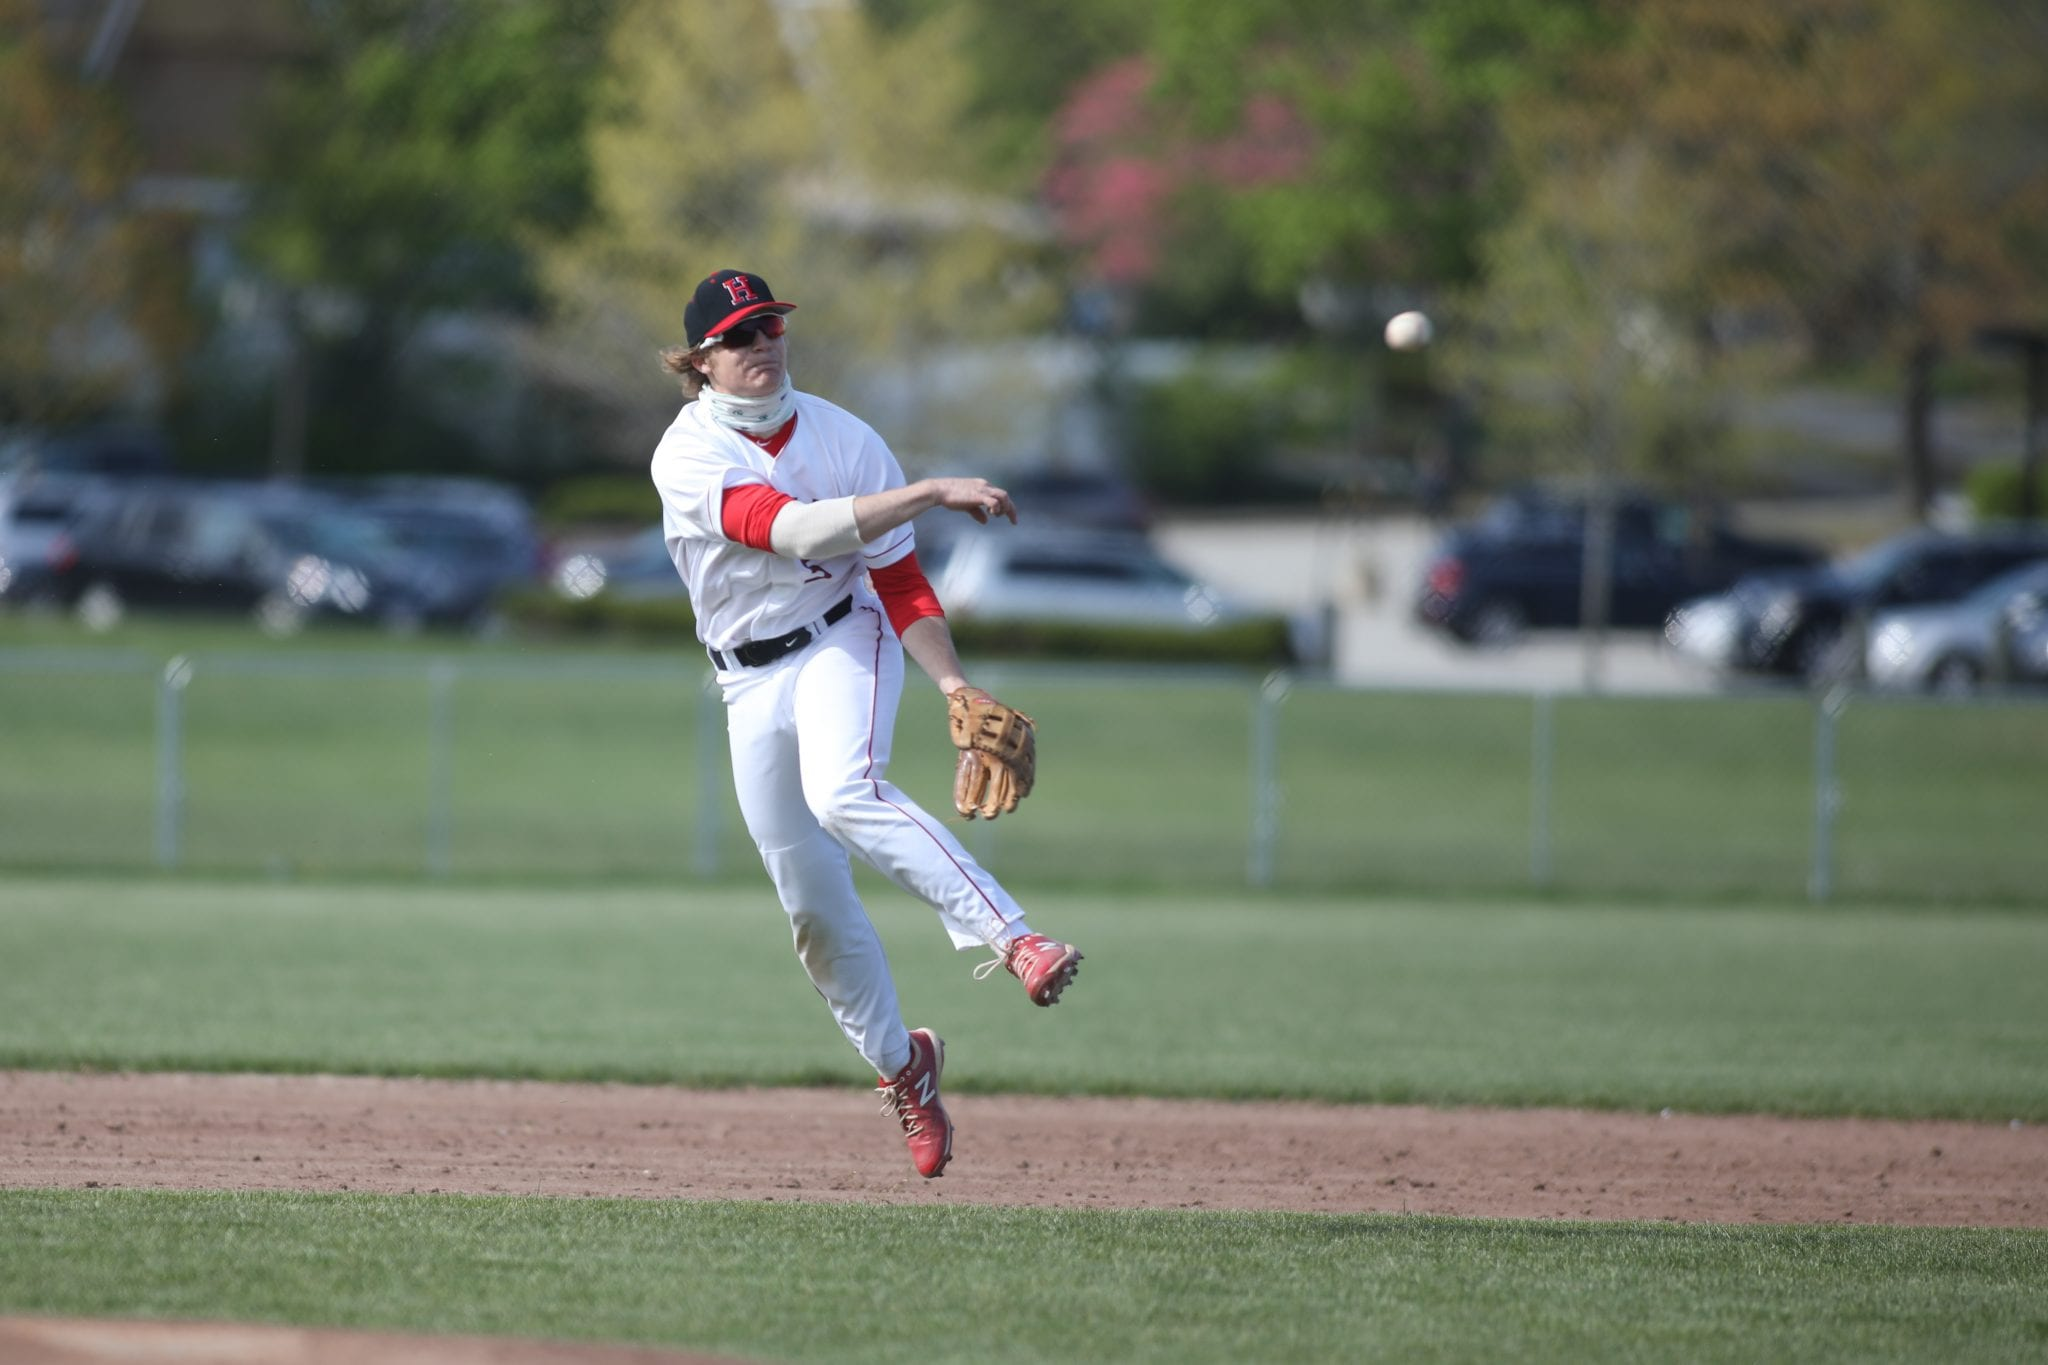 Senior captain Andrew McGowan fires it over to first base early in the game.